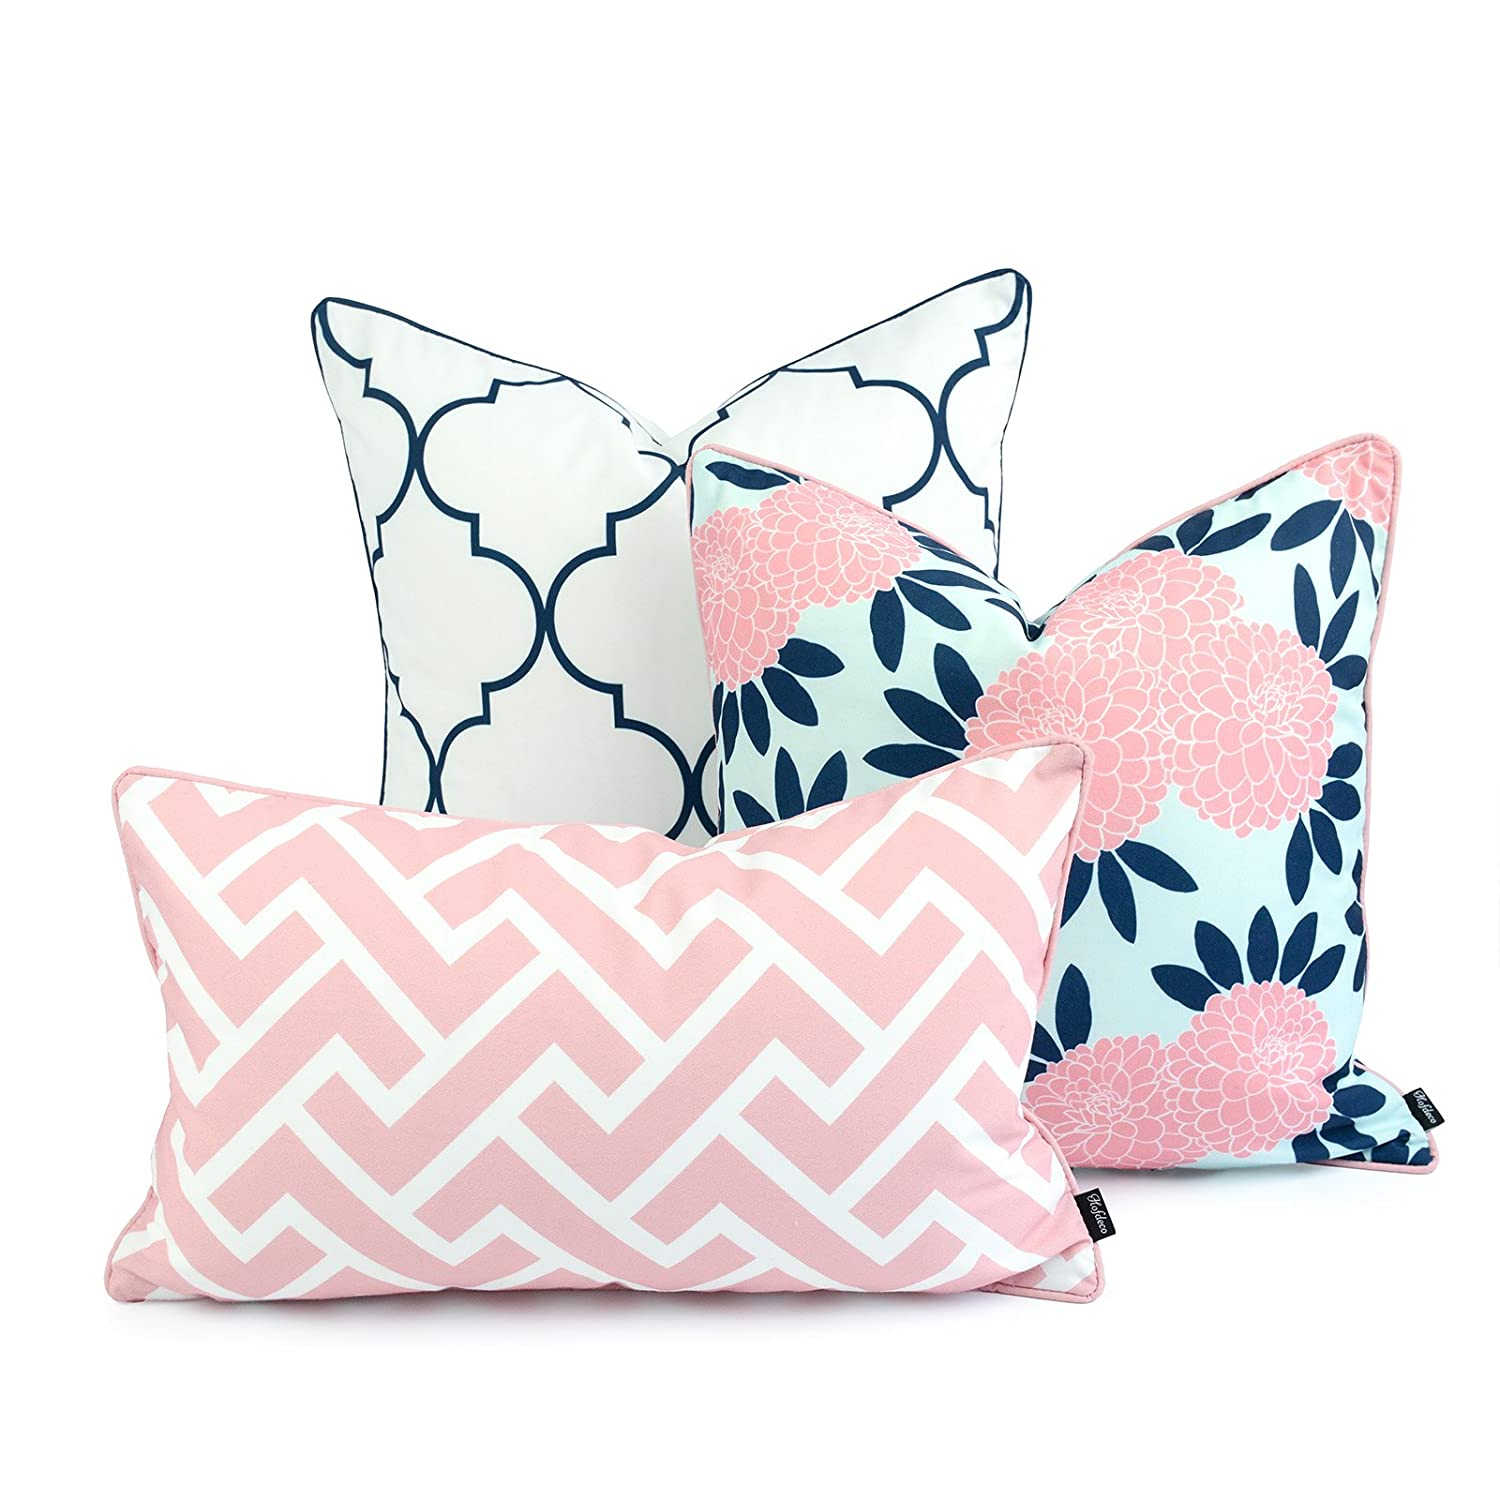 Hofdeco Decorative Throw and Lumbar Pillow Cover Indoor Outdoor Water Resistant Canvas Spring Navy Pink Quatrefoil Maze Chinoiserie Floral 18 x18 20 x20 12 x20 Set of 3